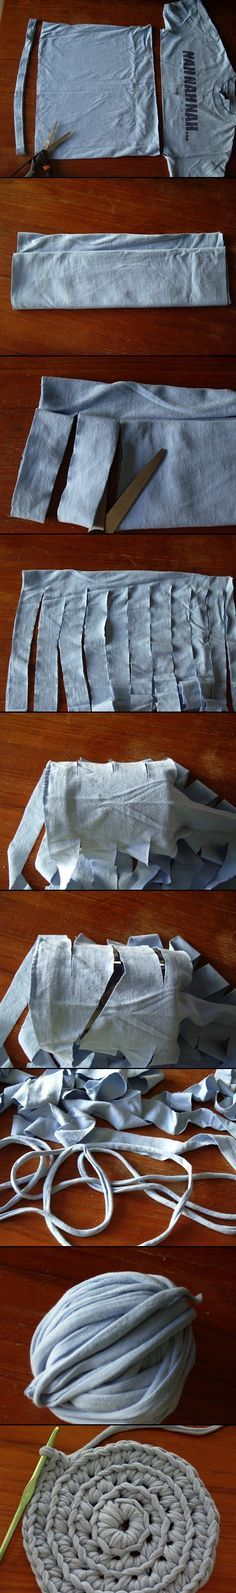 Brilliant Tutorial = Crochet yarn from cotton t-shirts!  Cut, pull (to curl fabric), roll into ball for use!  Easey Peasey!